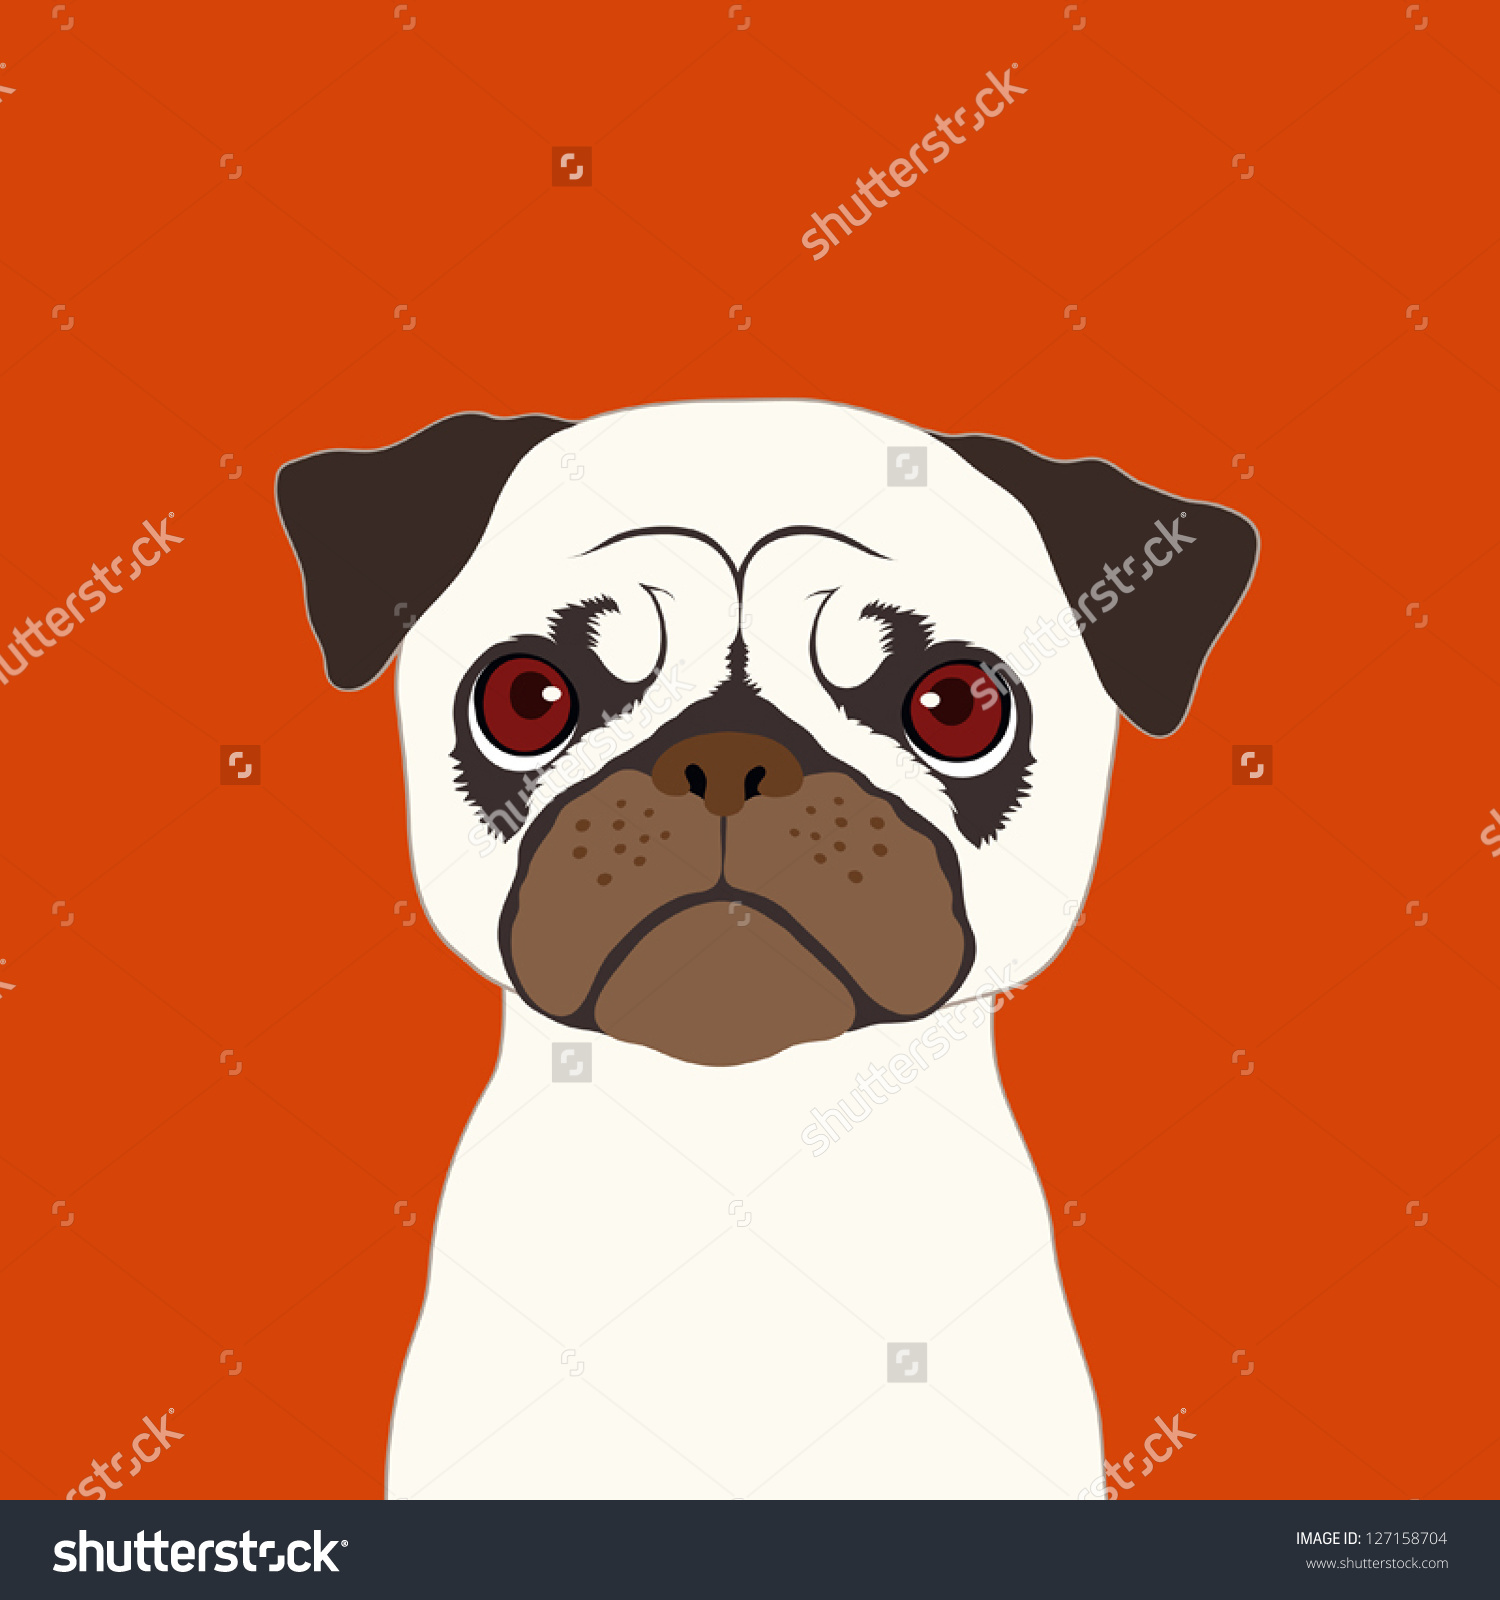 Buddy the dog clipart picture library library Pug, The Buddy Dog Stock Vector Illustration 127158704 : Shutterstock picture library library